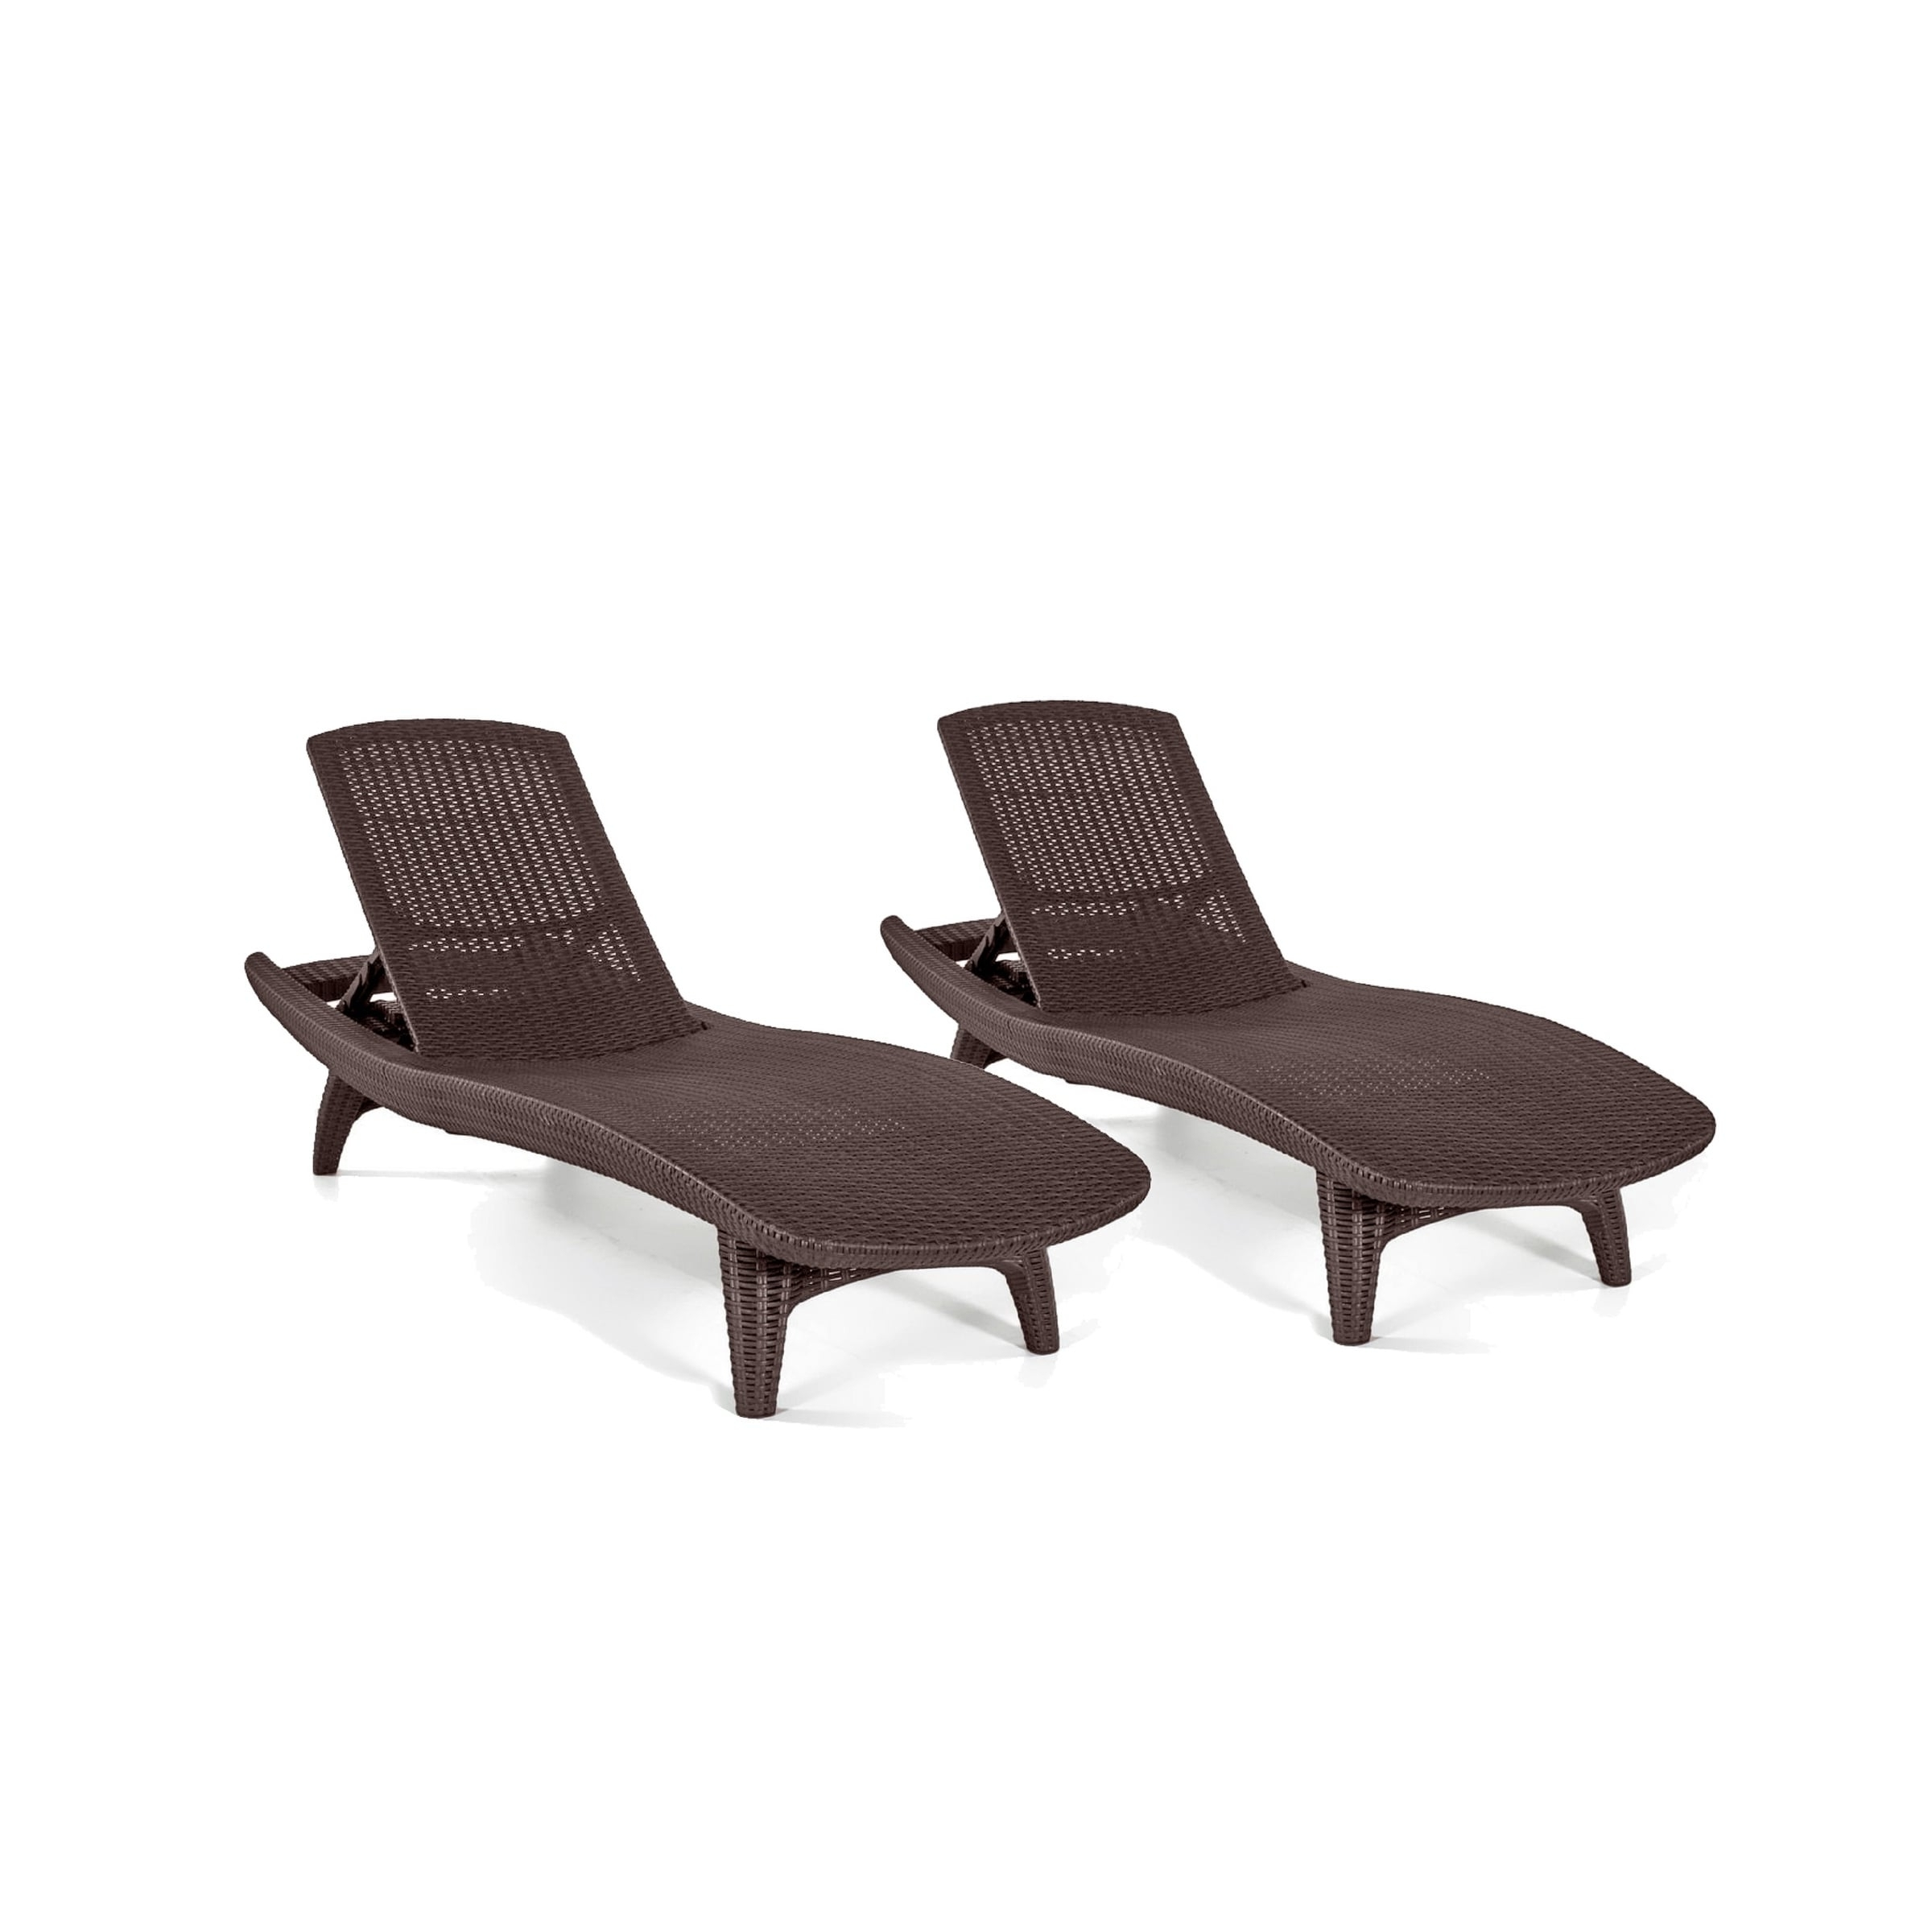 Most Popular Keter Chaise Lounges With Regard To Keter Pacific All Weather Outdoor Patio Brown Chaise Lounge (Set (View 11 of 15)